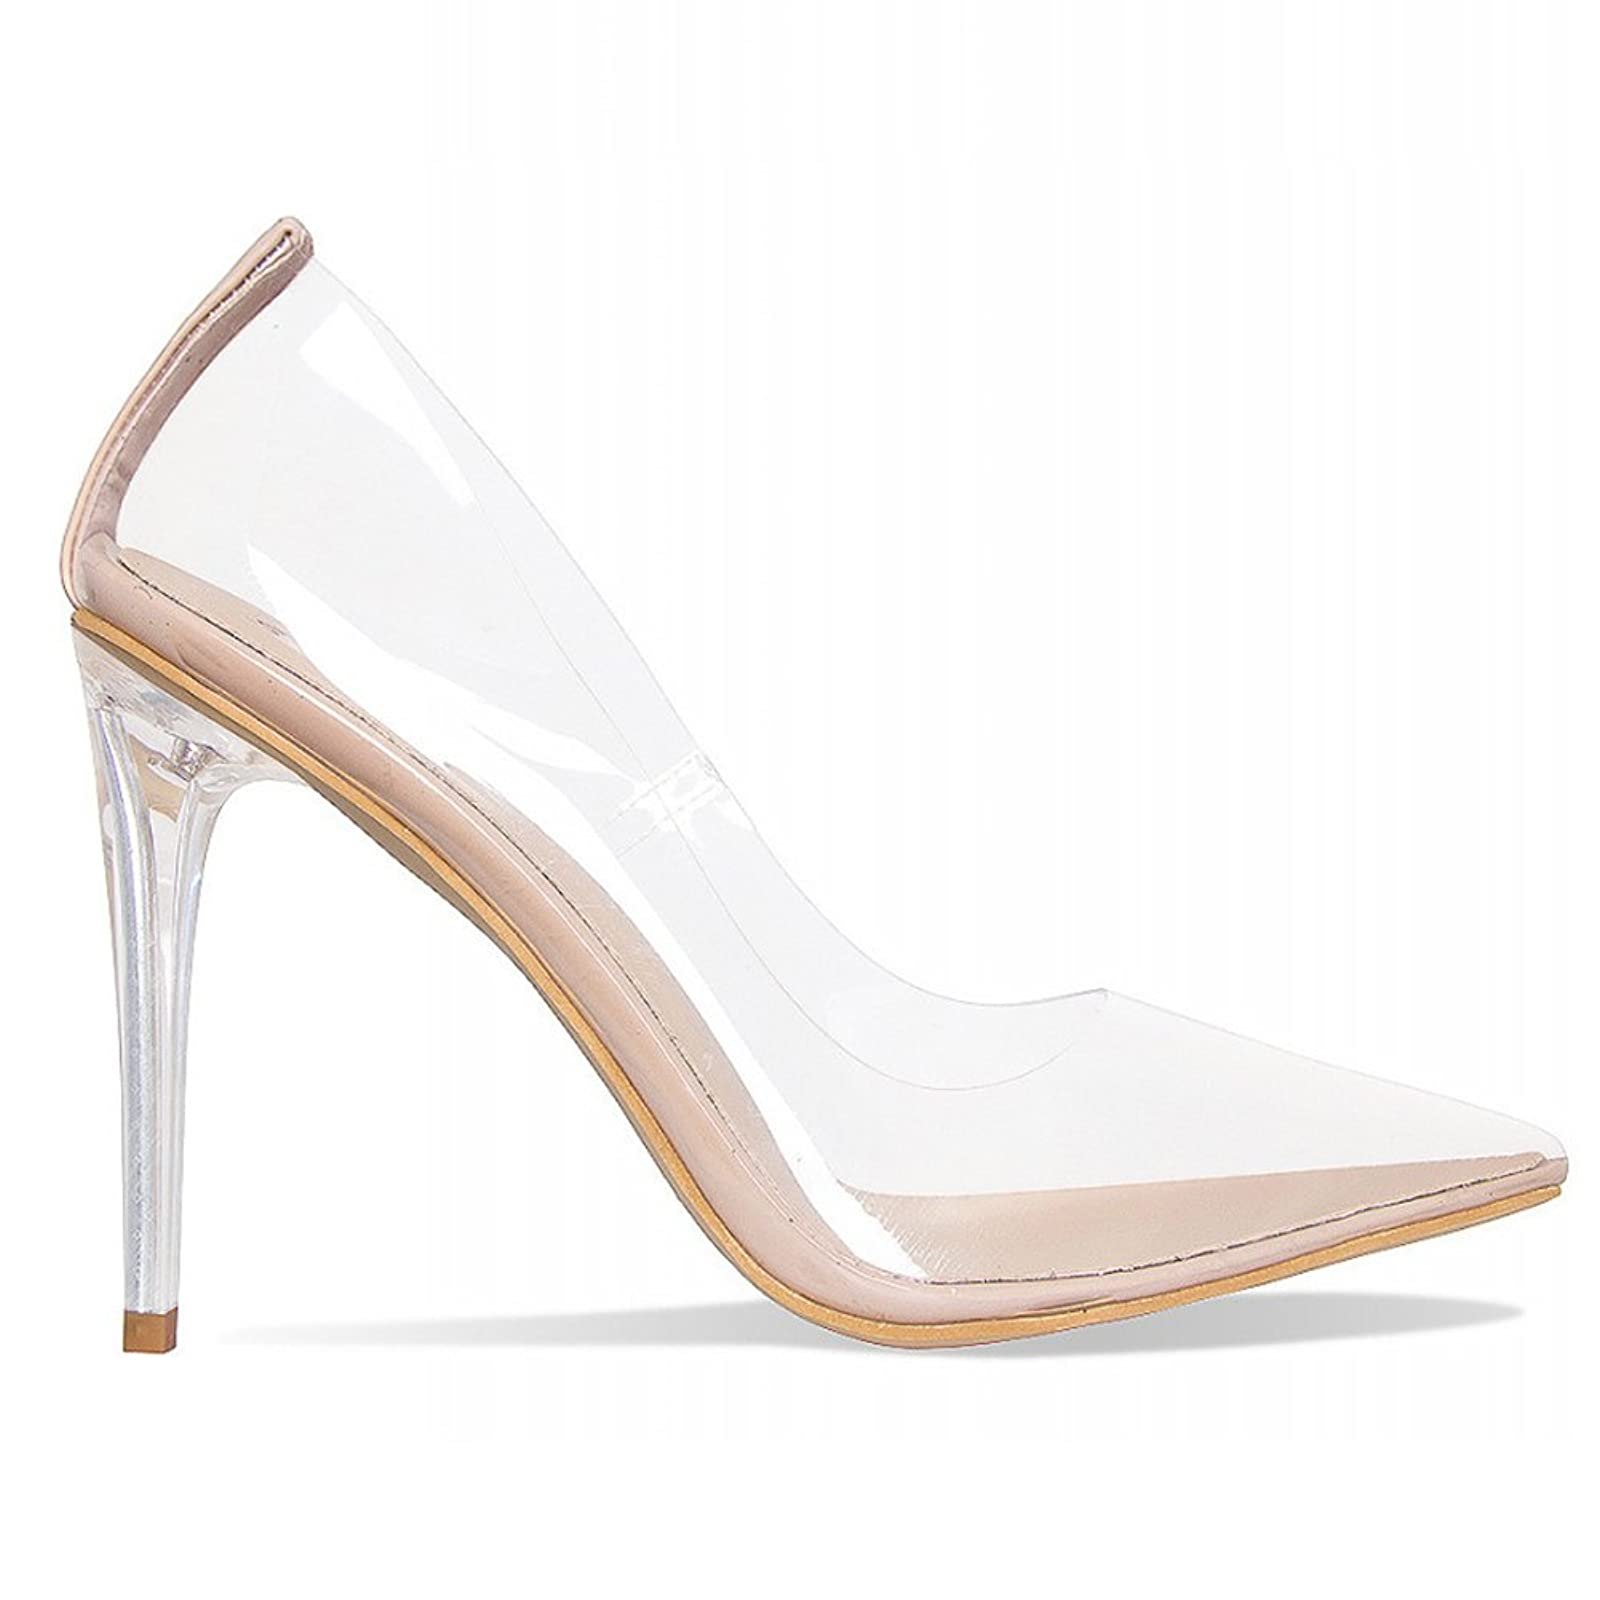 b34bf3eeb8 ... Hell&Heel Clear Stiletto Court Shoes PSP01 - 7 ...